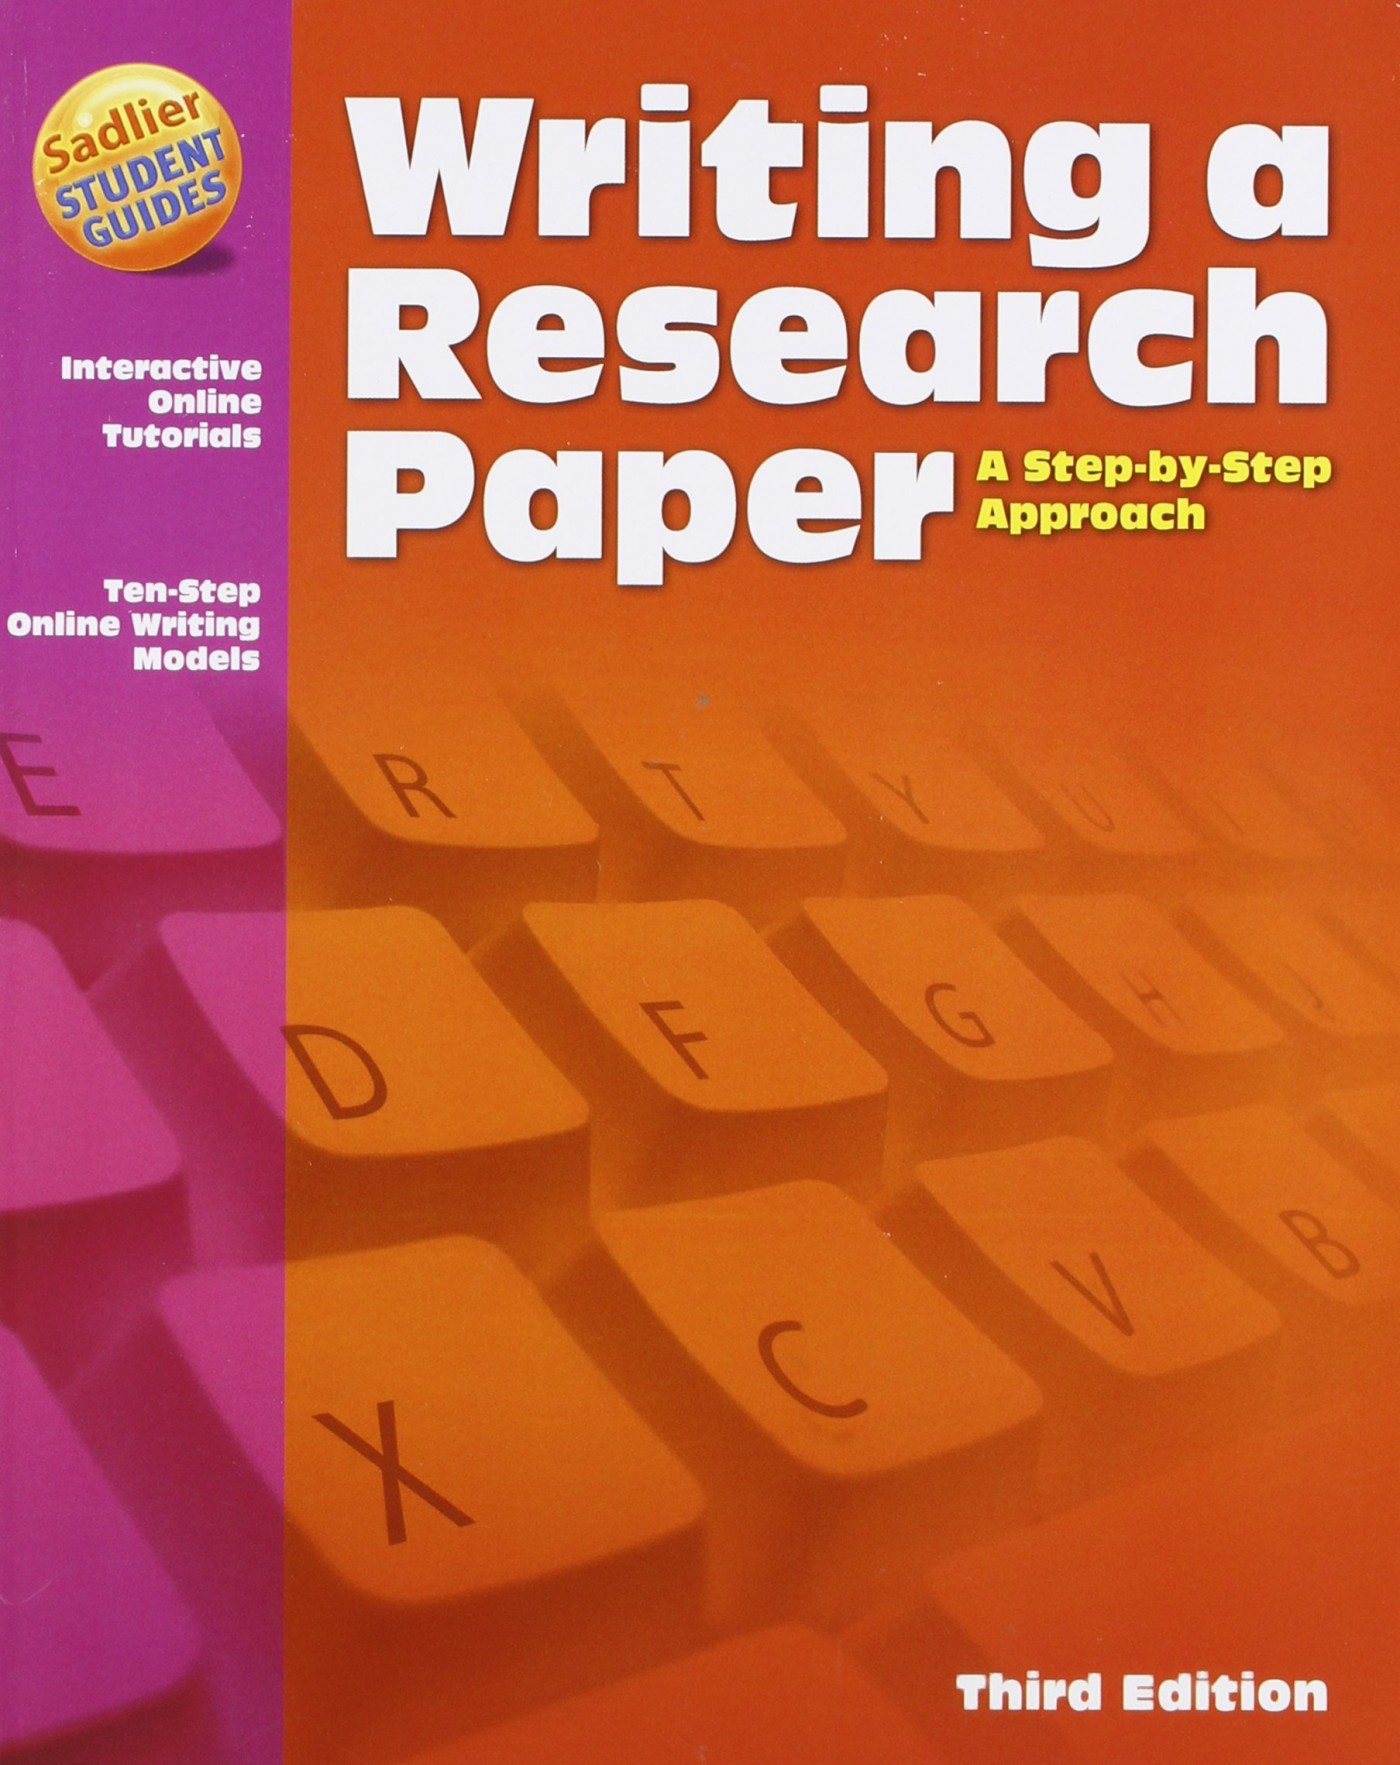 028 81uqfpthpml Research Paper Writing Fascinating Of Sample Introduction Steps A Pdf 1400